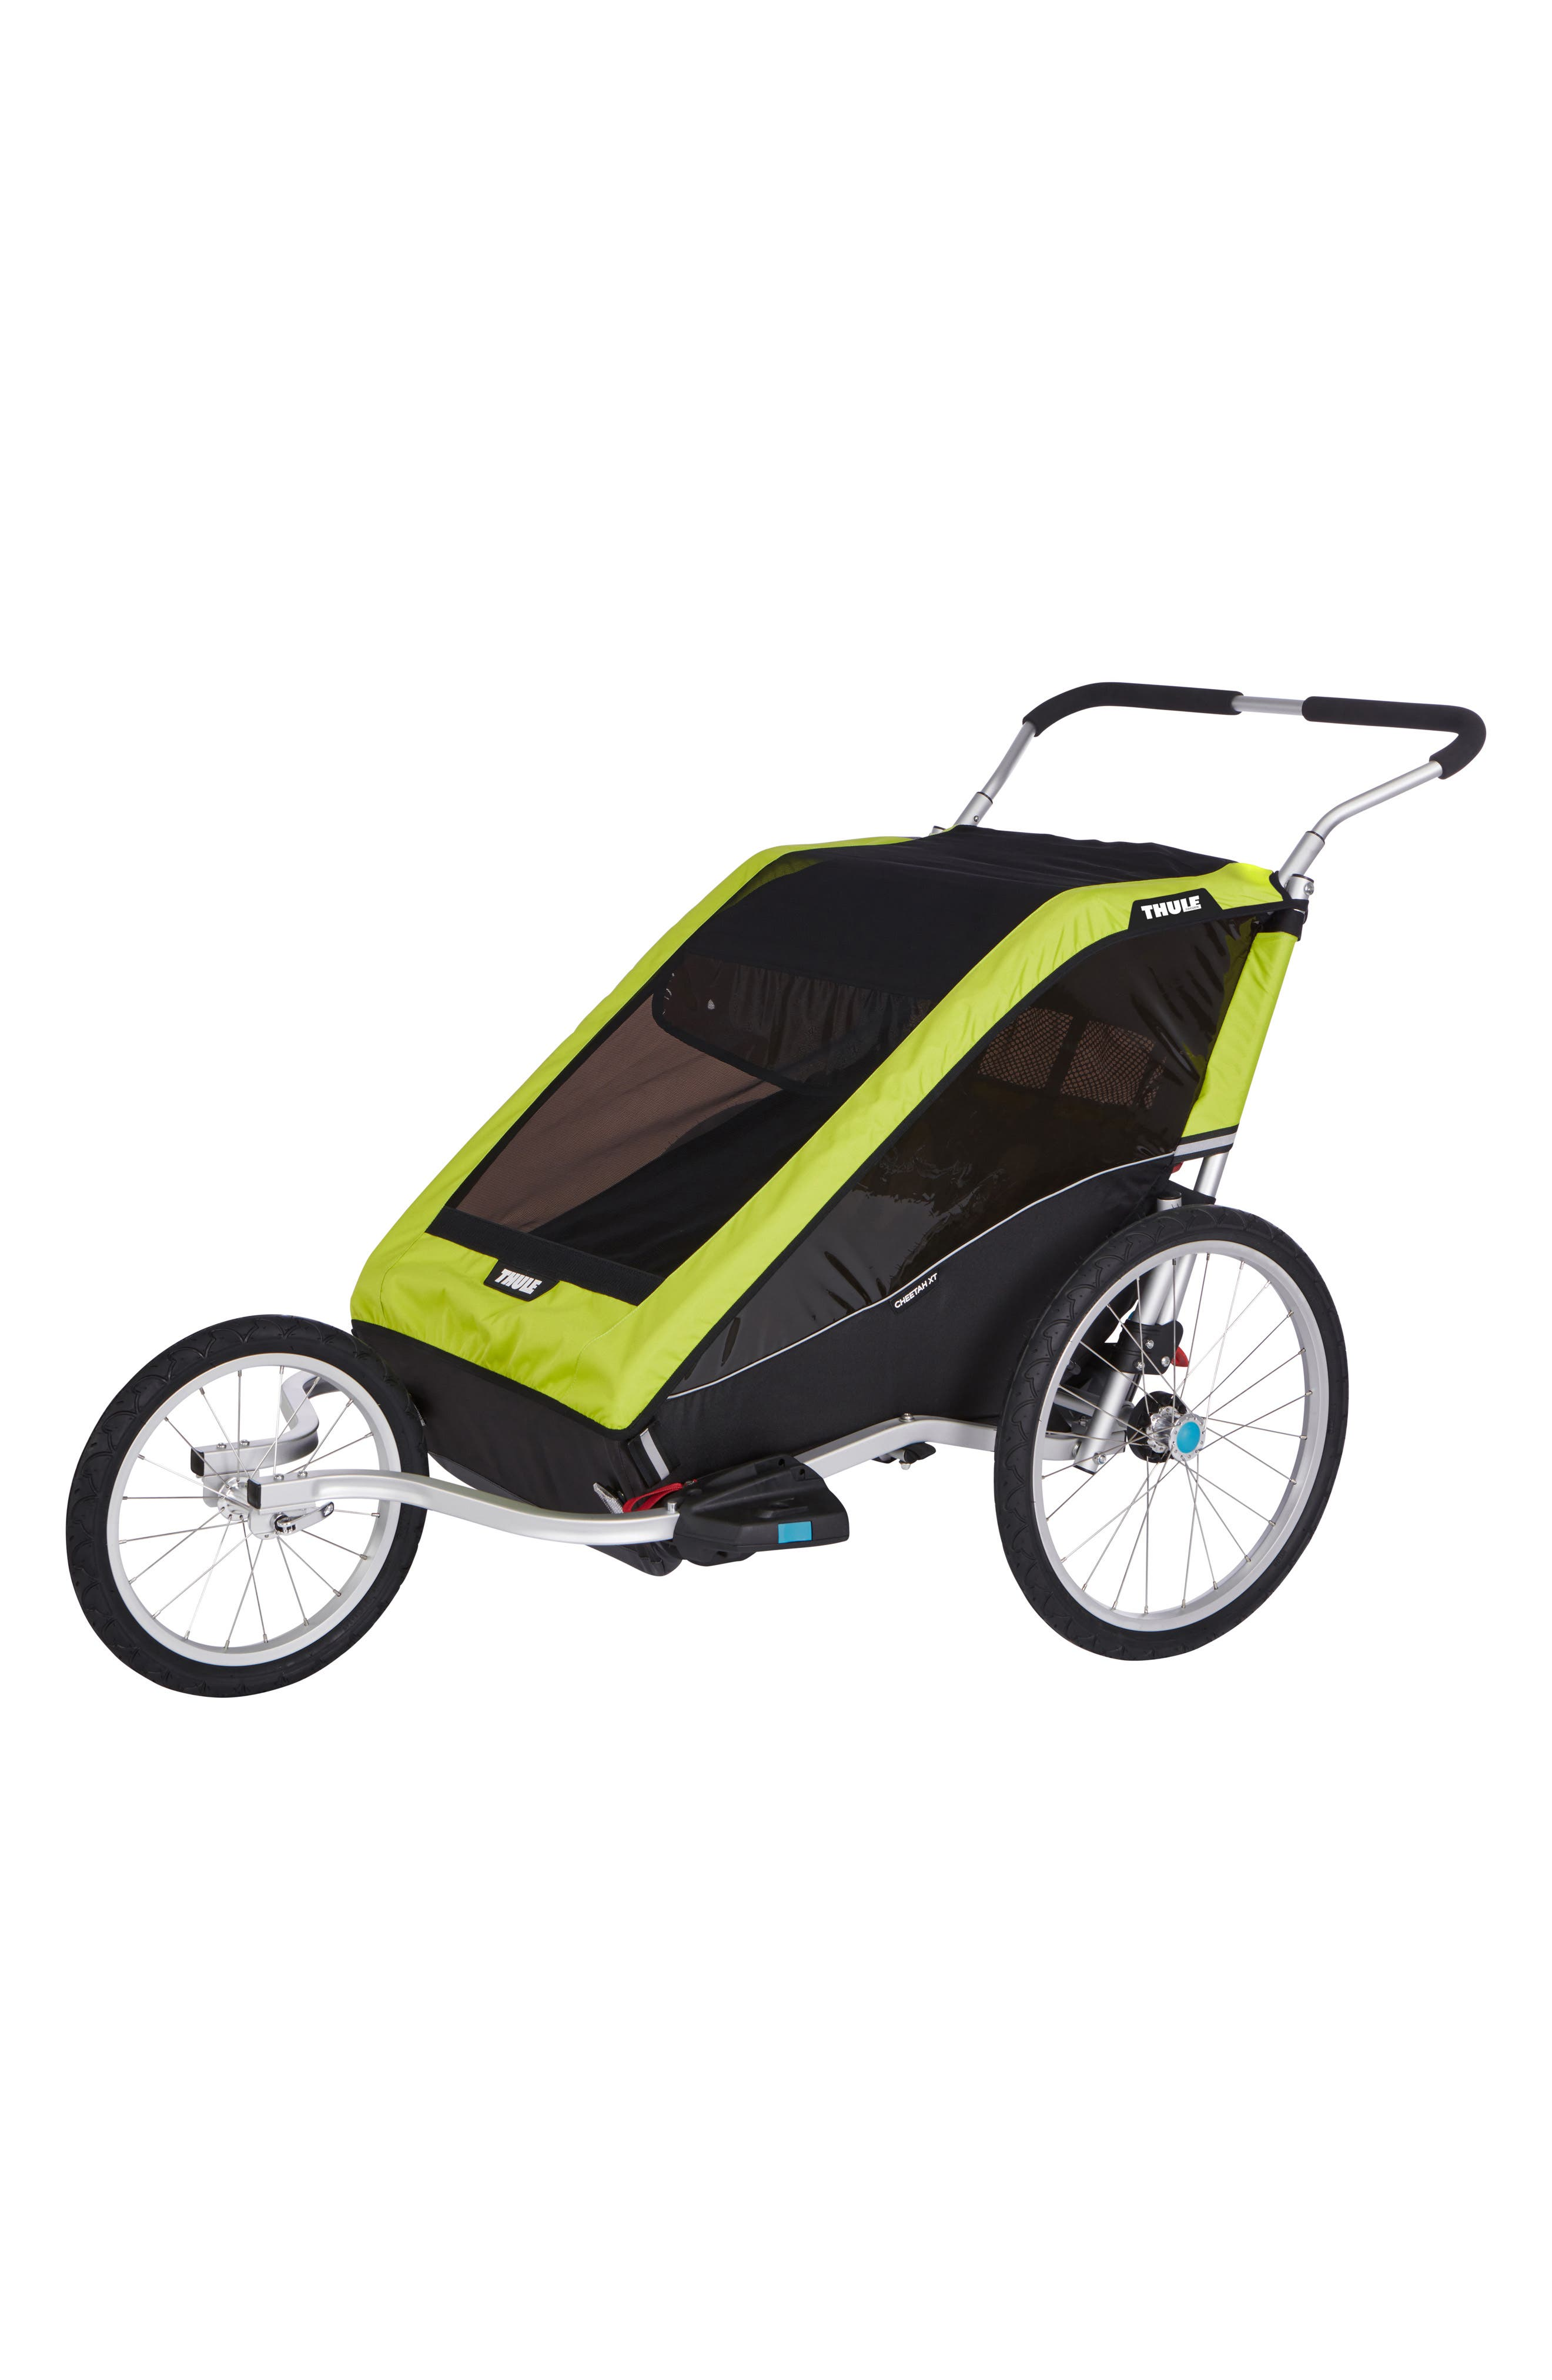 Chariot Cheetah XT 2 Multisport Double Cycle Trailer/Stroller,                             Alternate thumbnail 2, color,                             Chartreuse